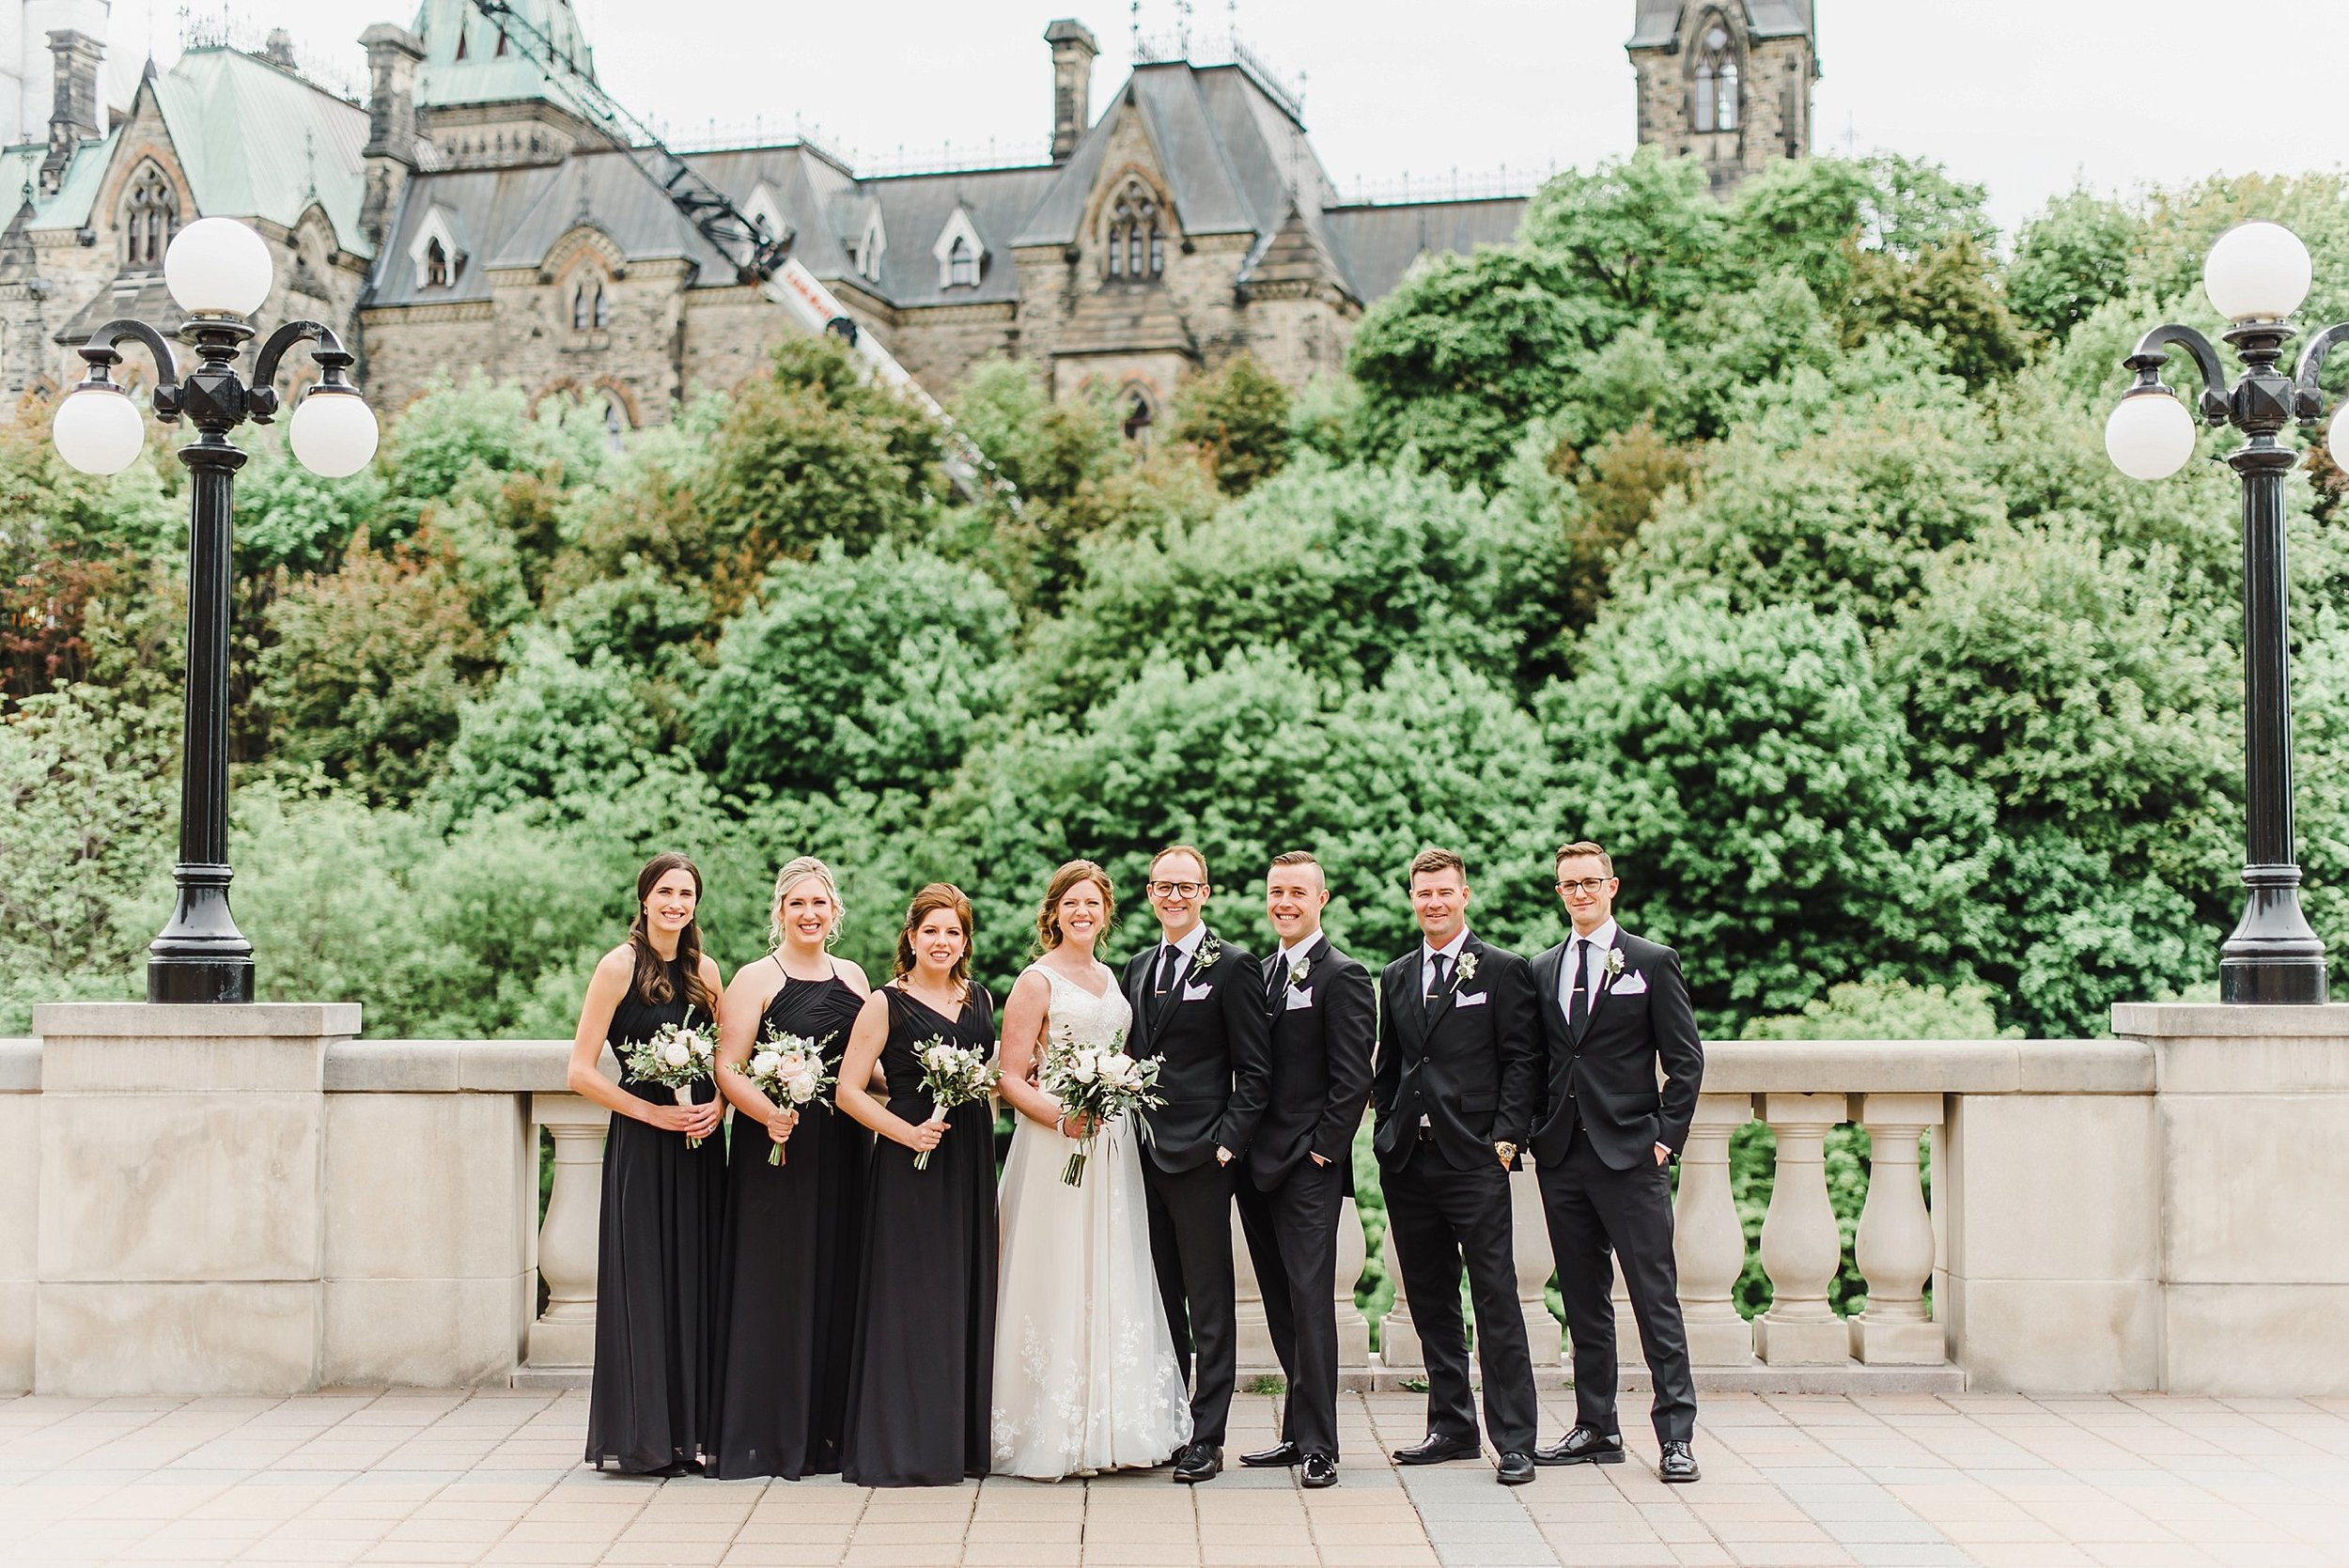 light airy indie fine art ottawa wedding photographer | Ali and Batoul Photography_0355.jpg